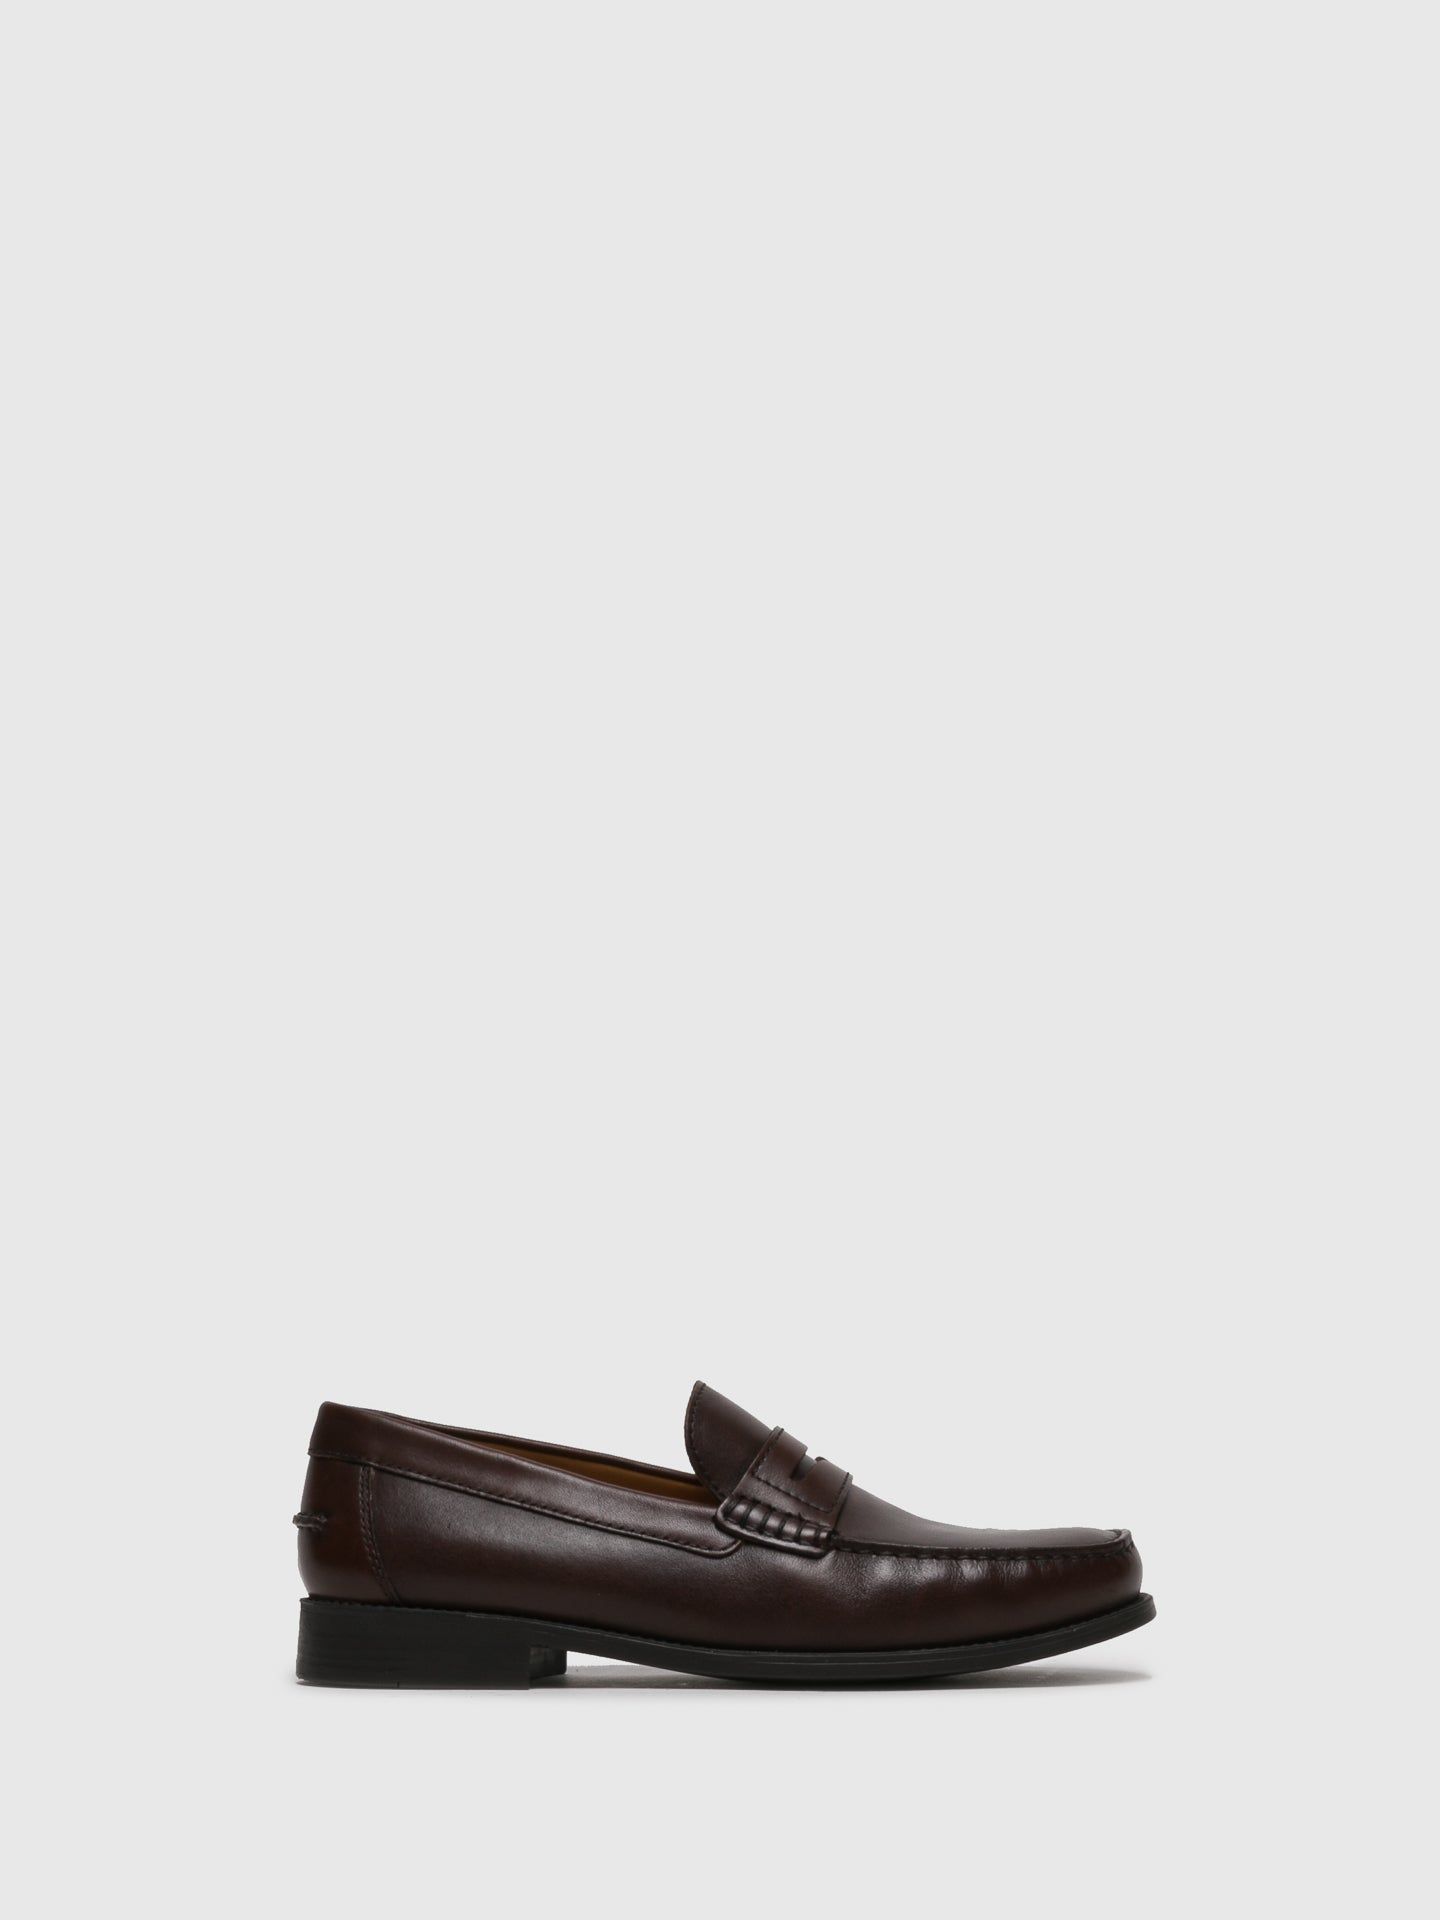 Geox Brown Loafers Shoes